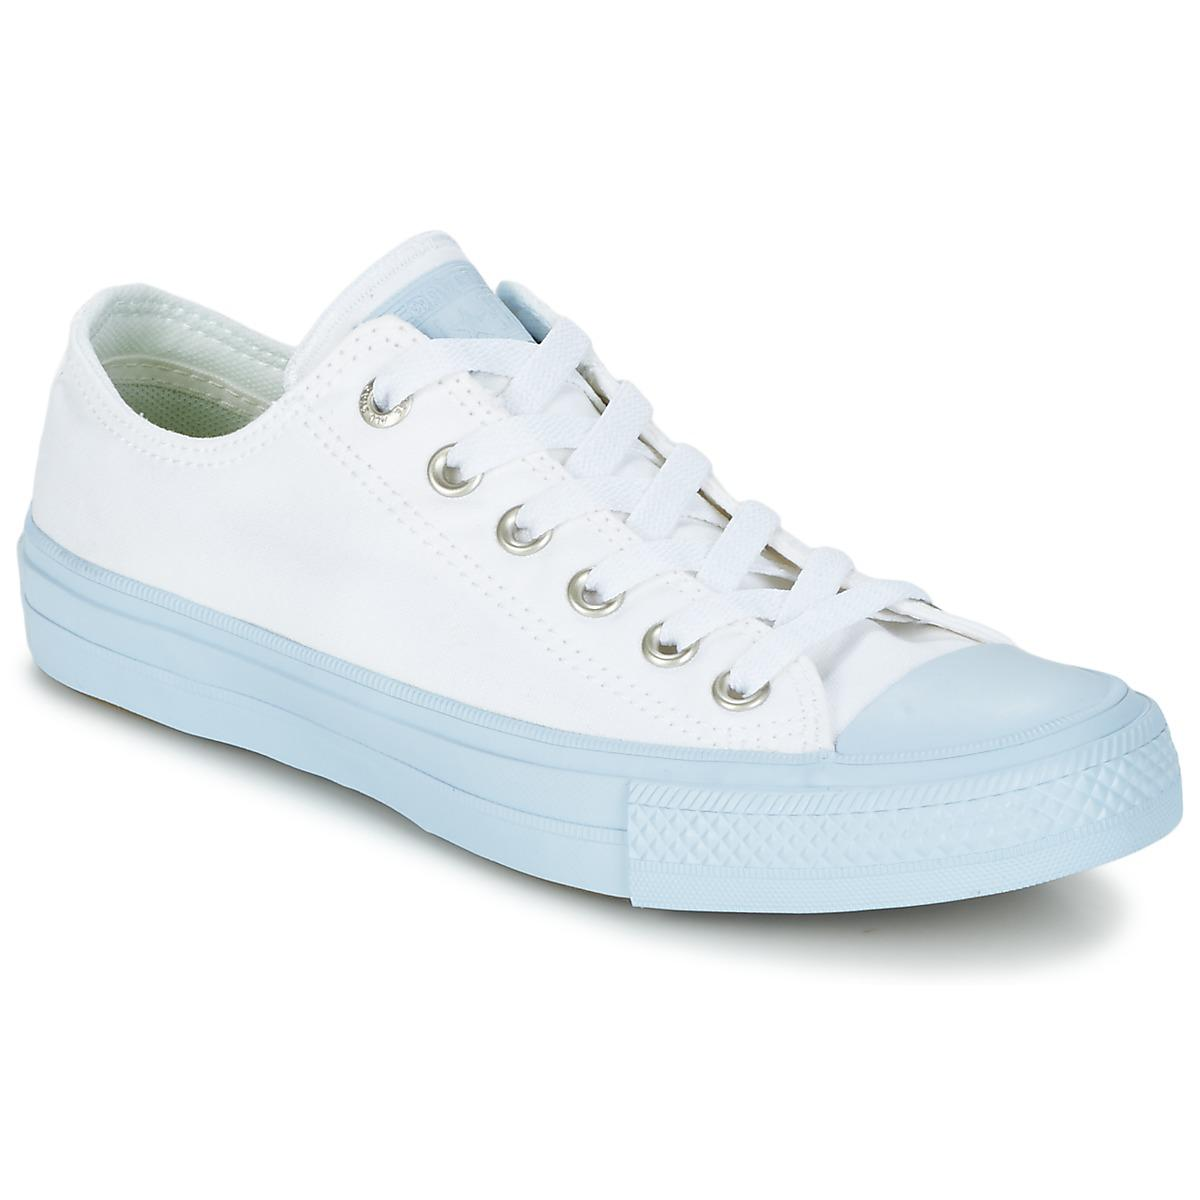 Converse Chuck Taylor All Star Ii Pastel Midsoles Ox Shoes (trainers) in Blue